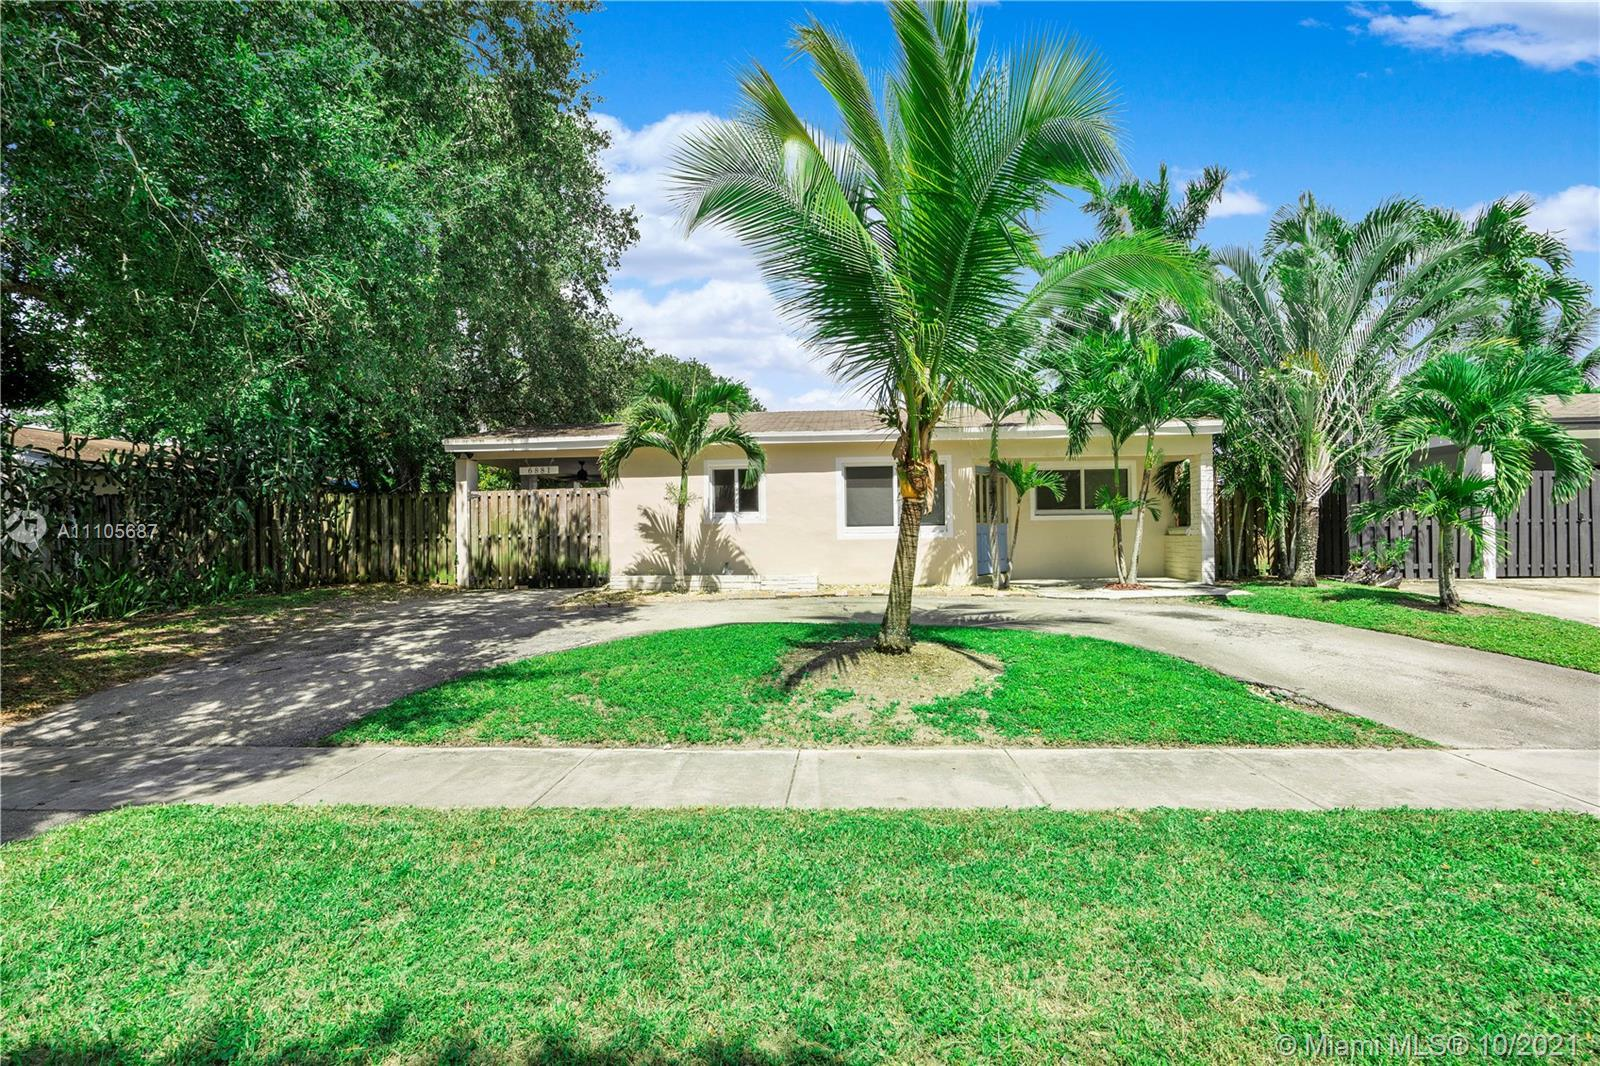 Spacious 2-Bed, 1-Bath Home With Carport In The Heart Of Hollywood On An Oversized Lot. Room To Park